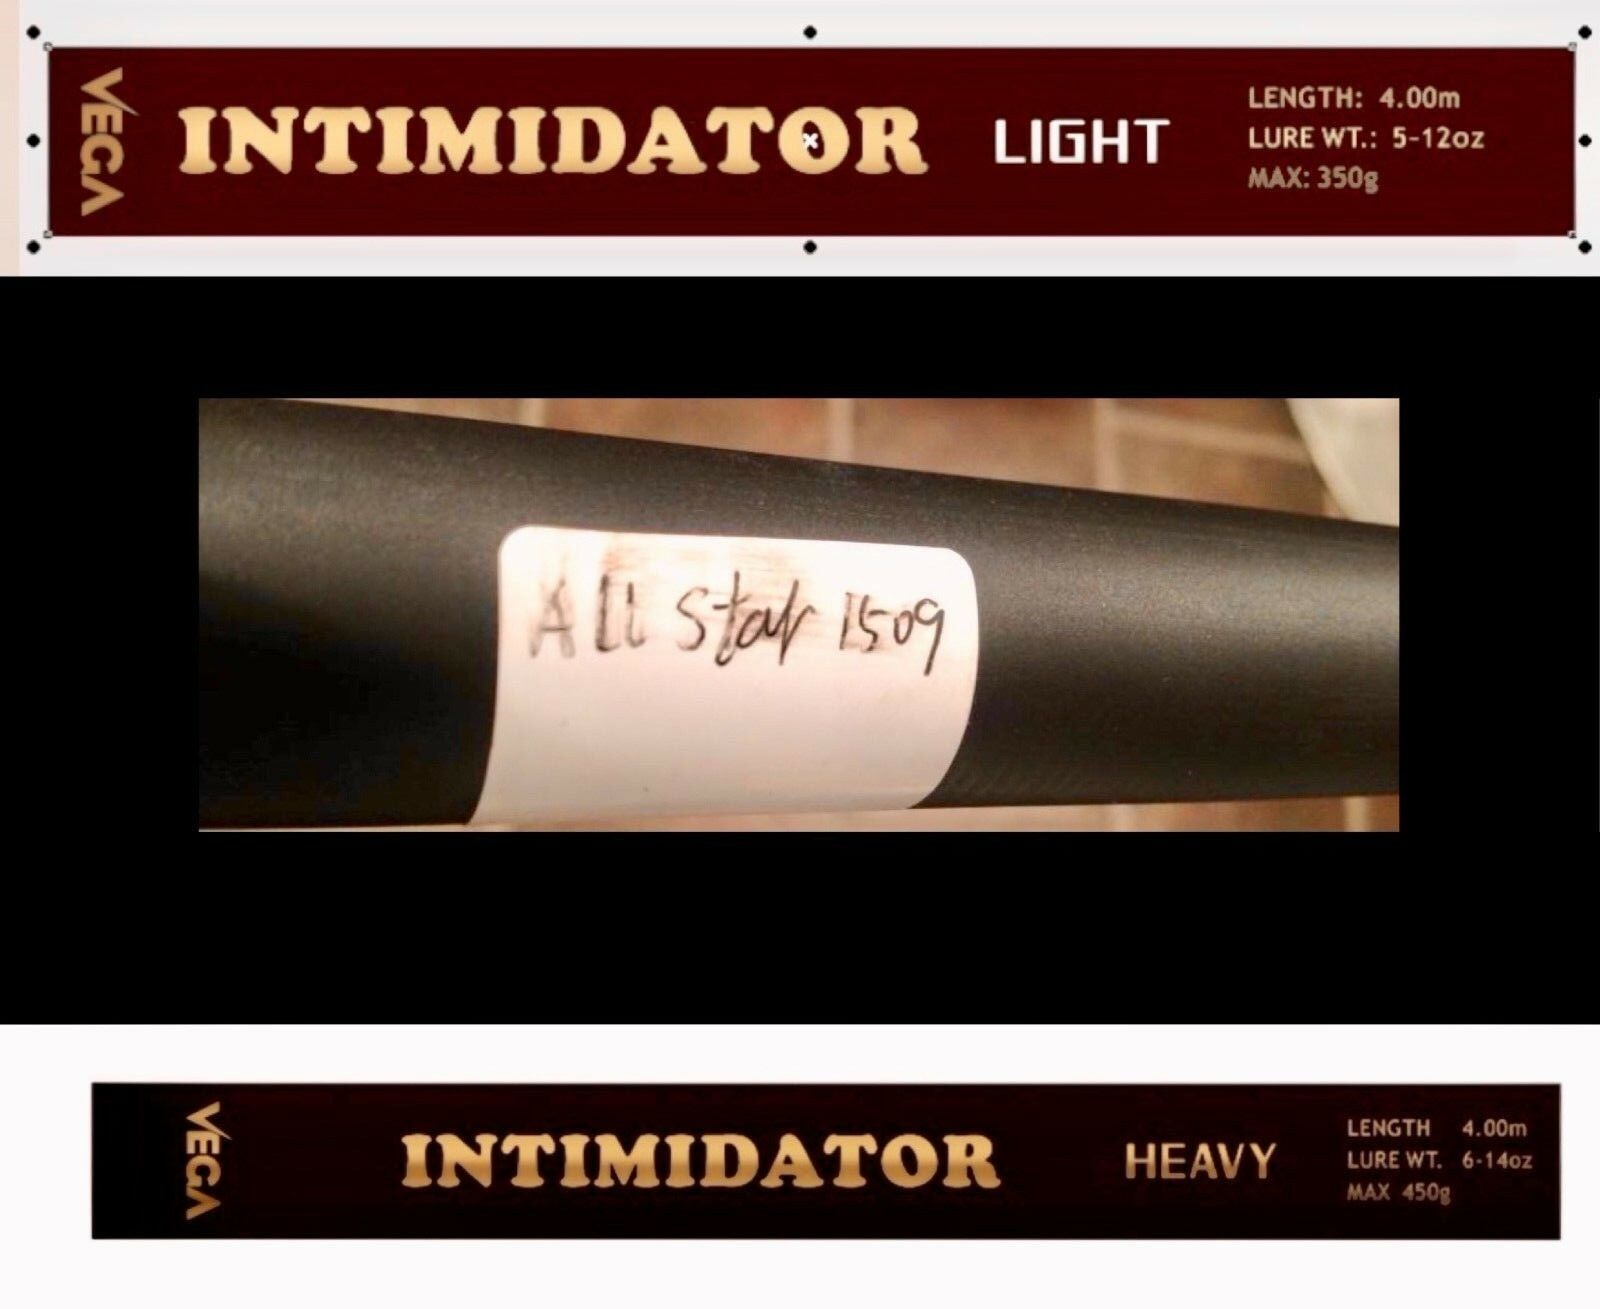 INTIMIDATOR L AND H ROD BLANKS-SPECIAL INTRODUCTORY PRICE